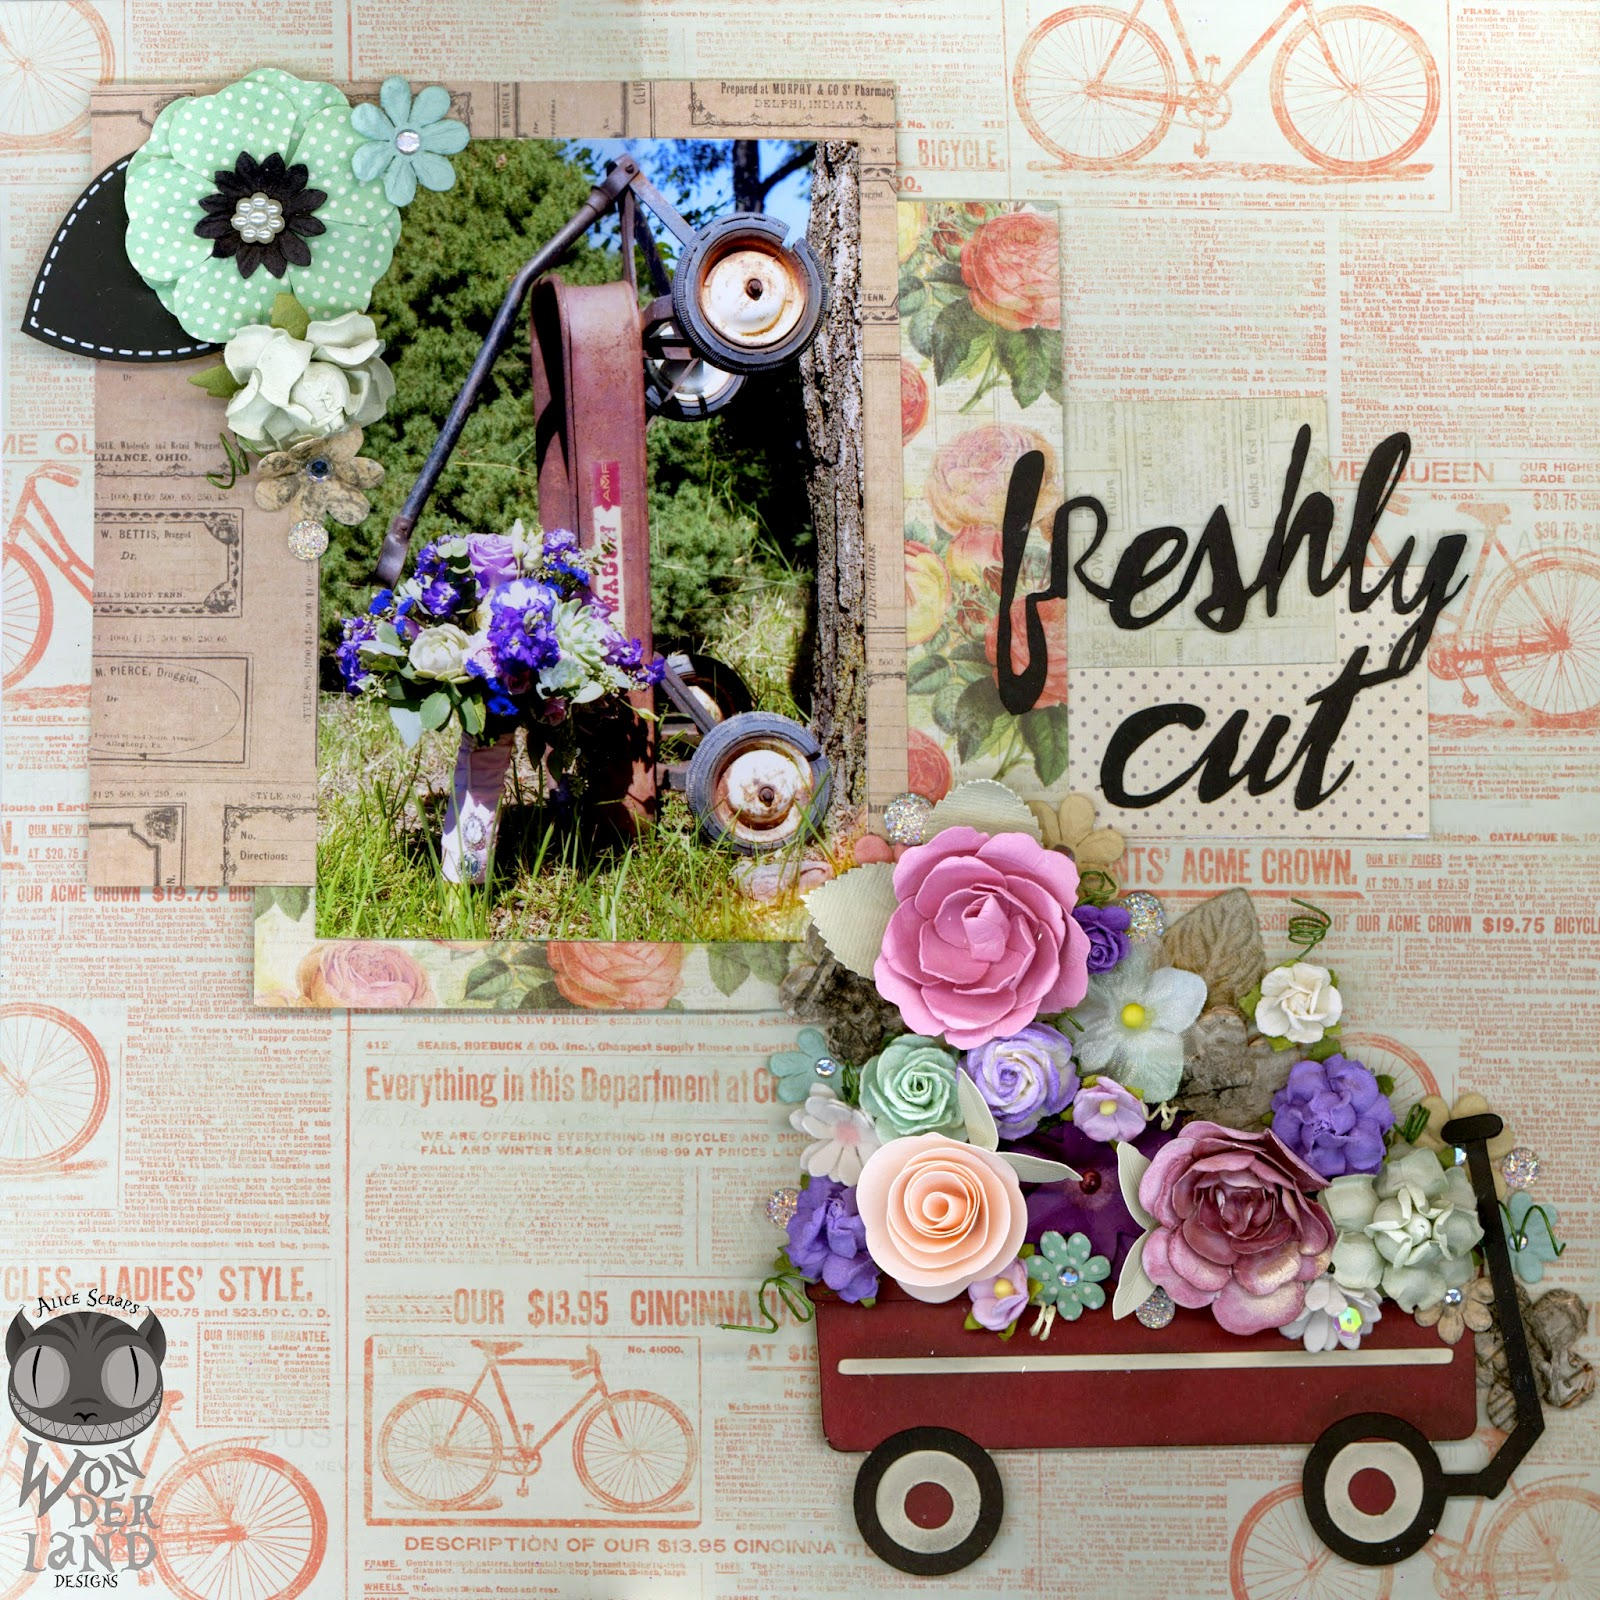 scrapbook, scrapbooking, custom made, handmade, flowers, Prima Marketing, wedding, Something Blue, wagon, vintage, bicycle, bouquet, hydrangea, rose, succulents, lisianthus, paper crafting, toy wagon, die cut